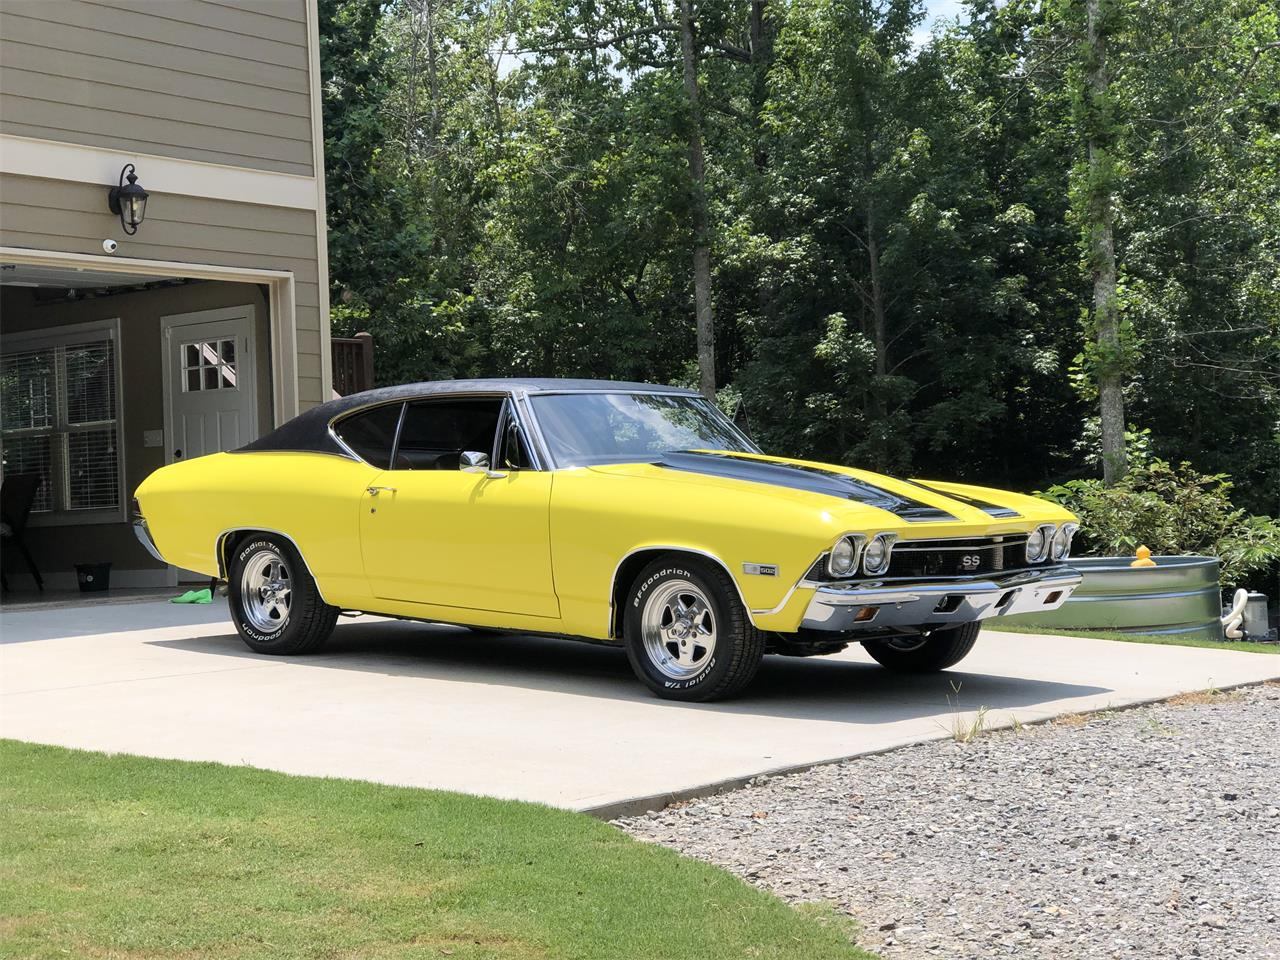 For Sale: 1968 Chevrolet Chevelle SS in Canton, Georgia